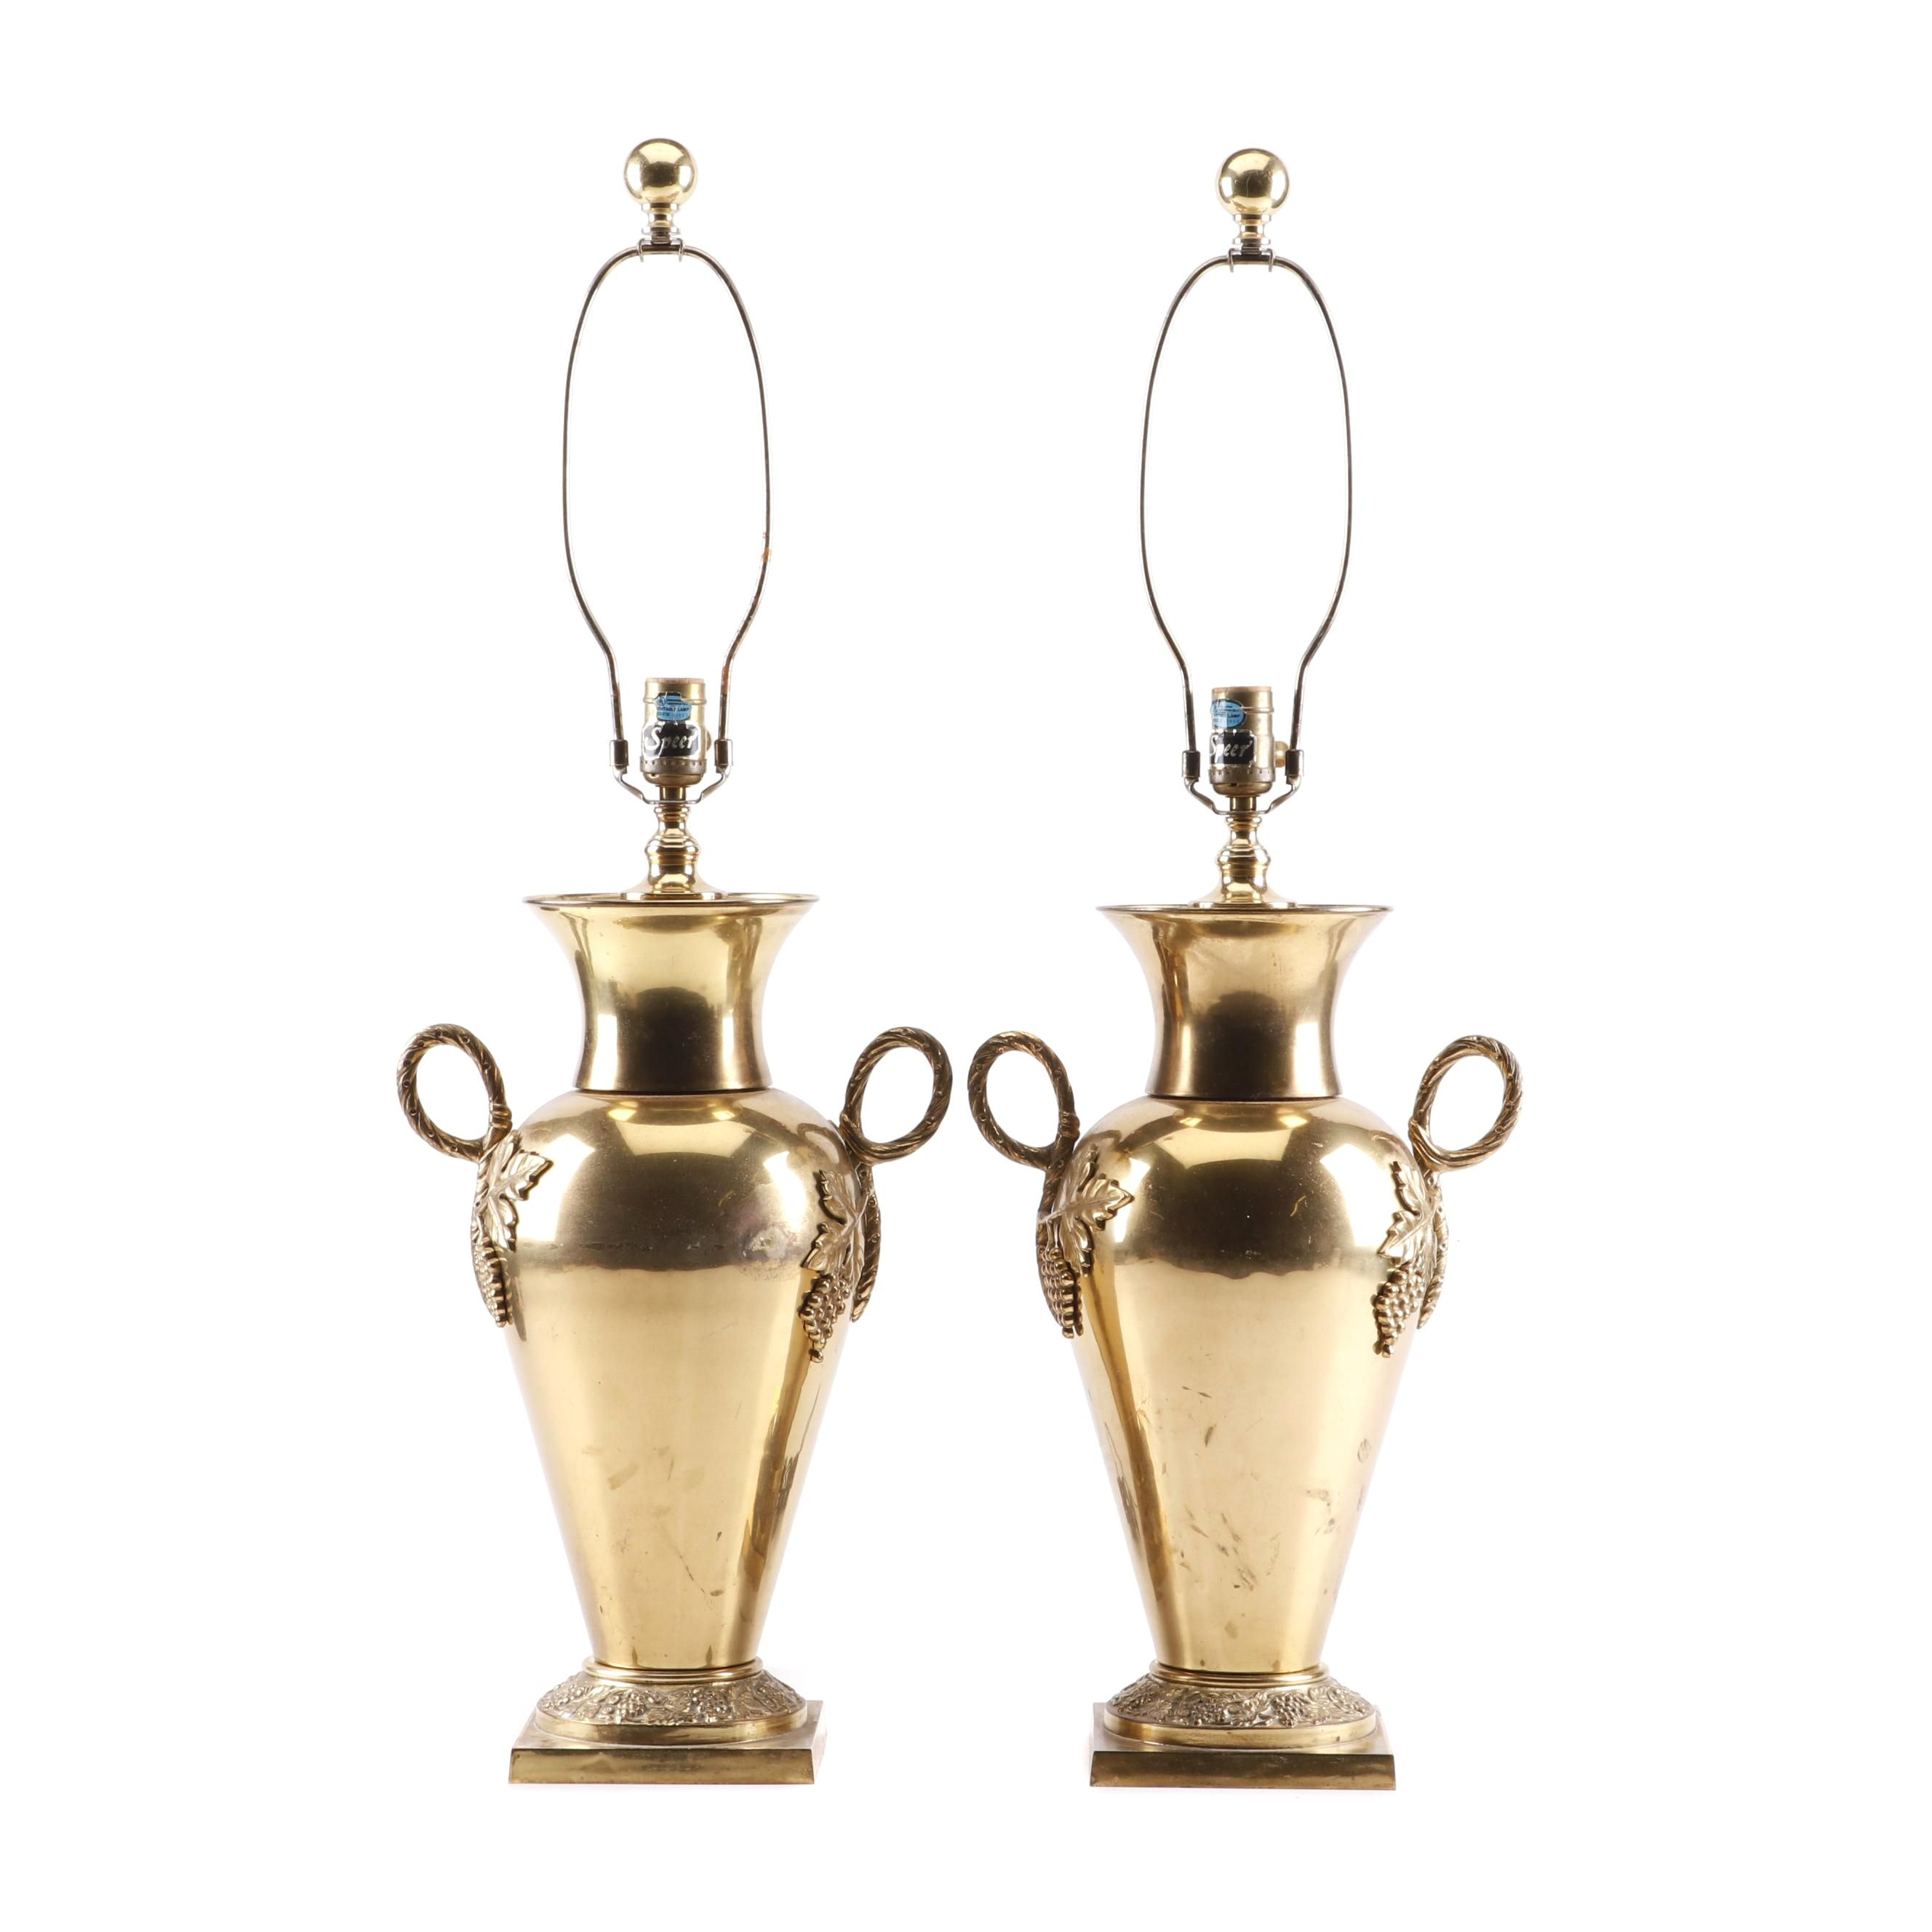 Speer Neoclassical Style Brass Urn Form Table Lamps, Circa 1940